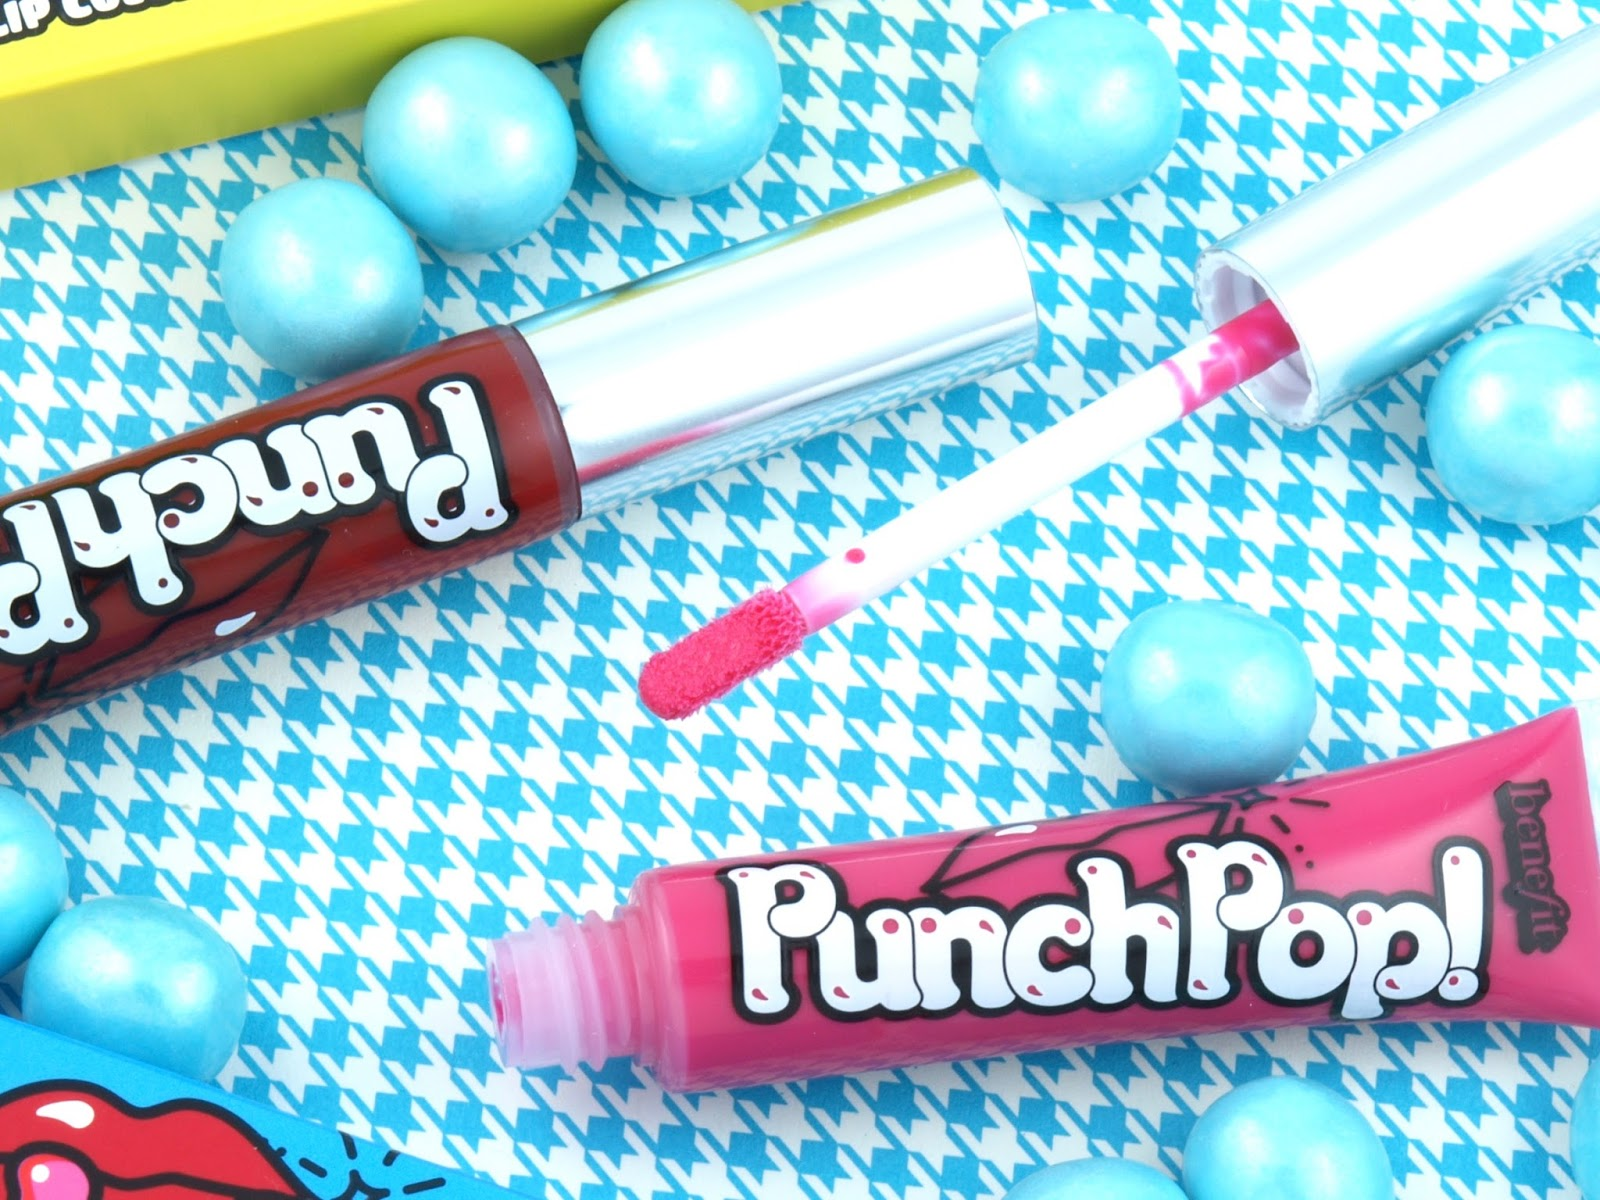 Benefit Punch Pop Liquid Lip Color: Review and Swatches